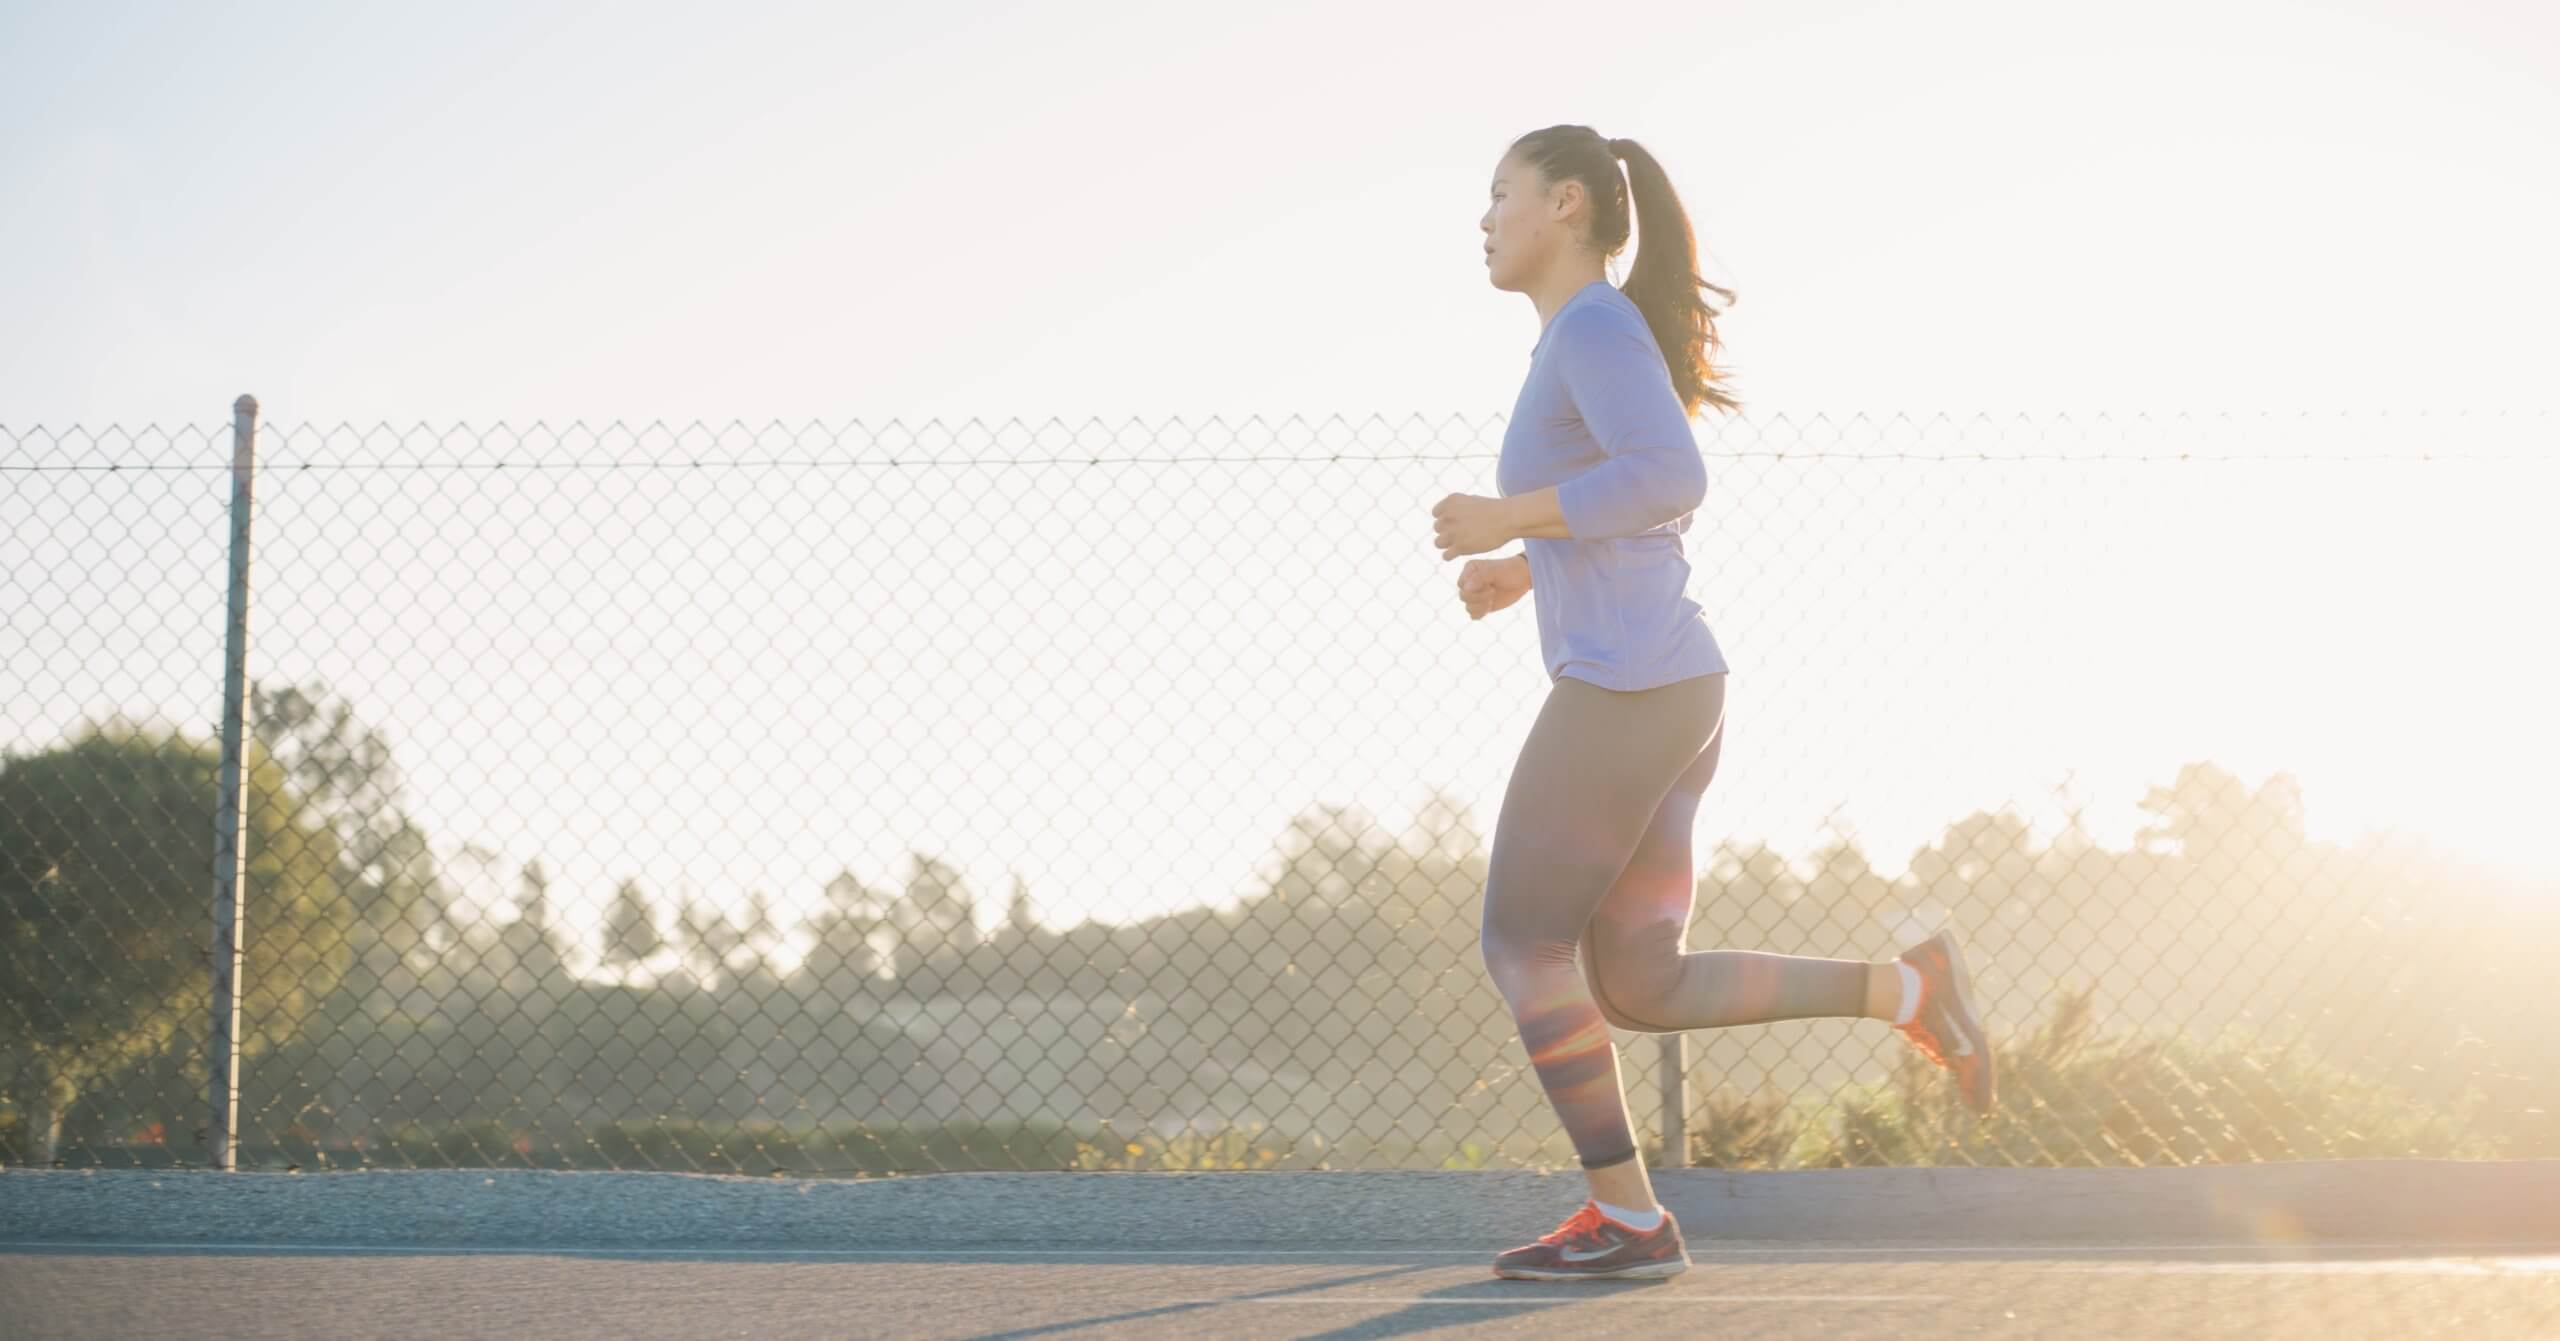 CBD can help give your body a boost during exercise